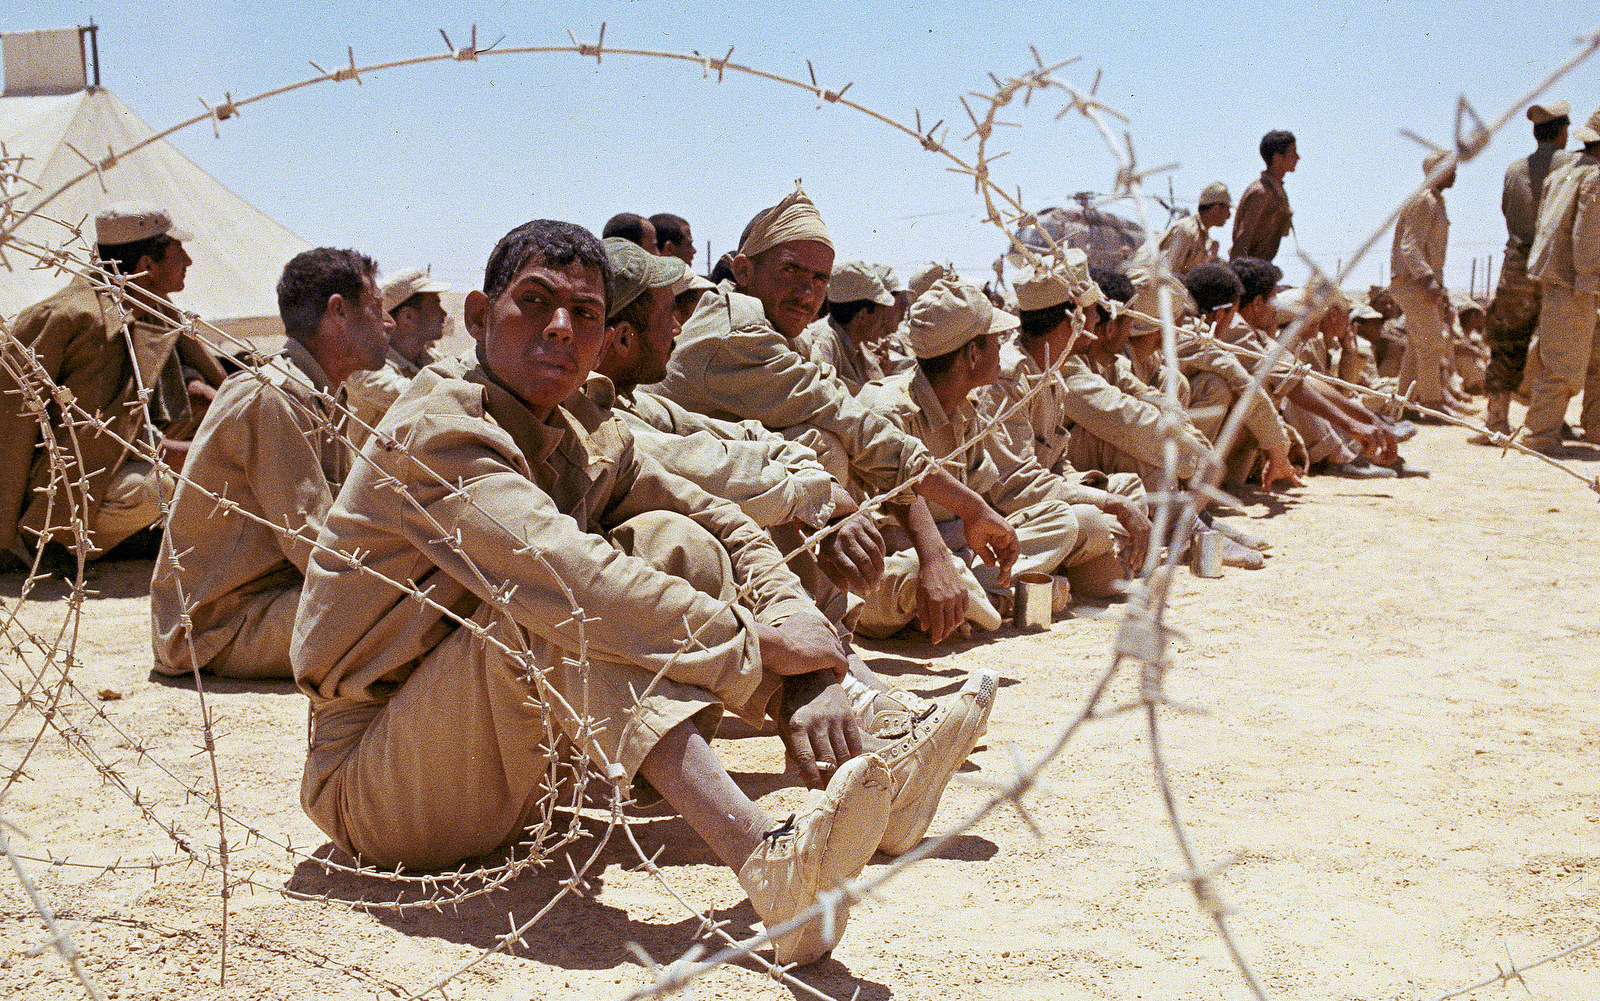 Arab Prisoners Are Shown Captured During The Arab Israeli Six Day War In June 1967